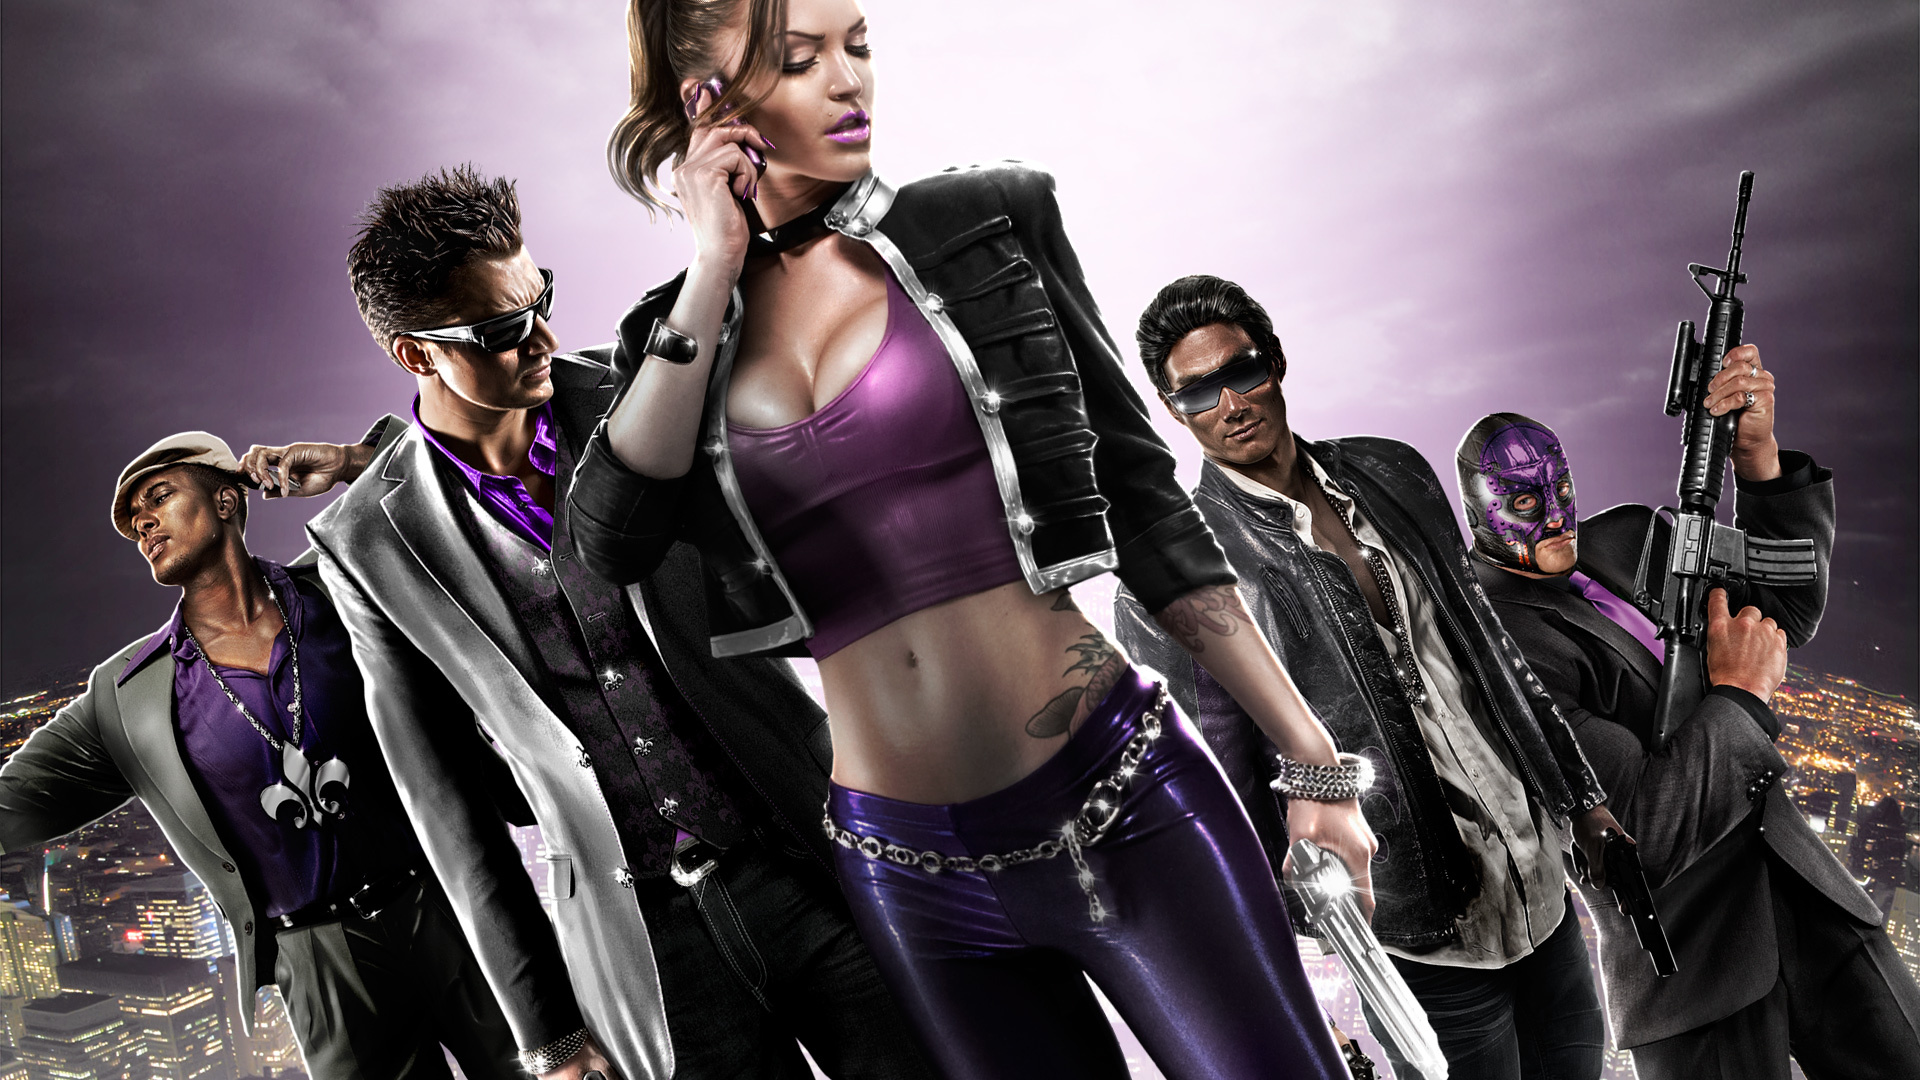 Saints Row 3 The Third The Full Package Deluxe Pack